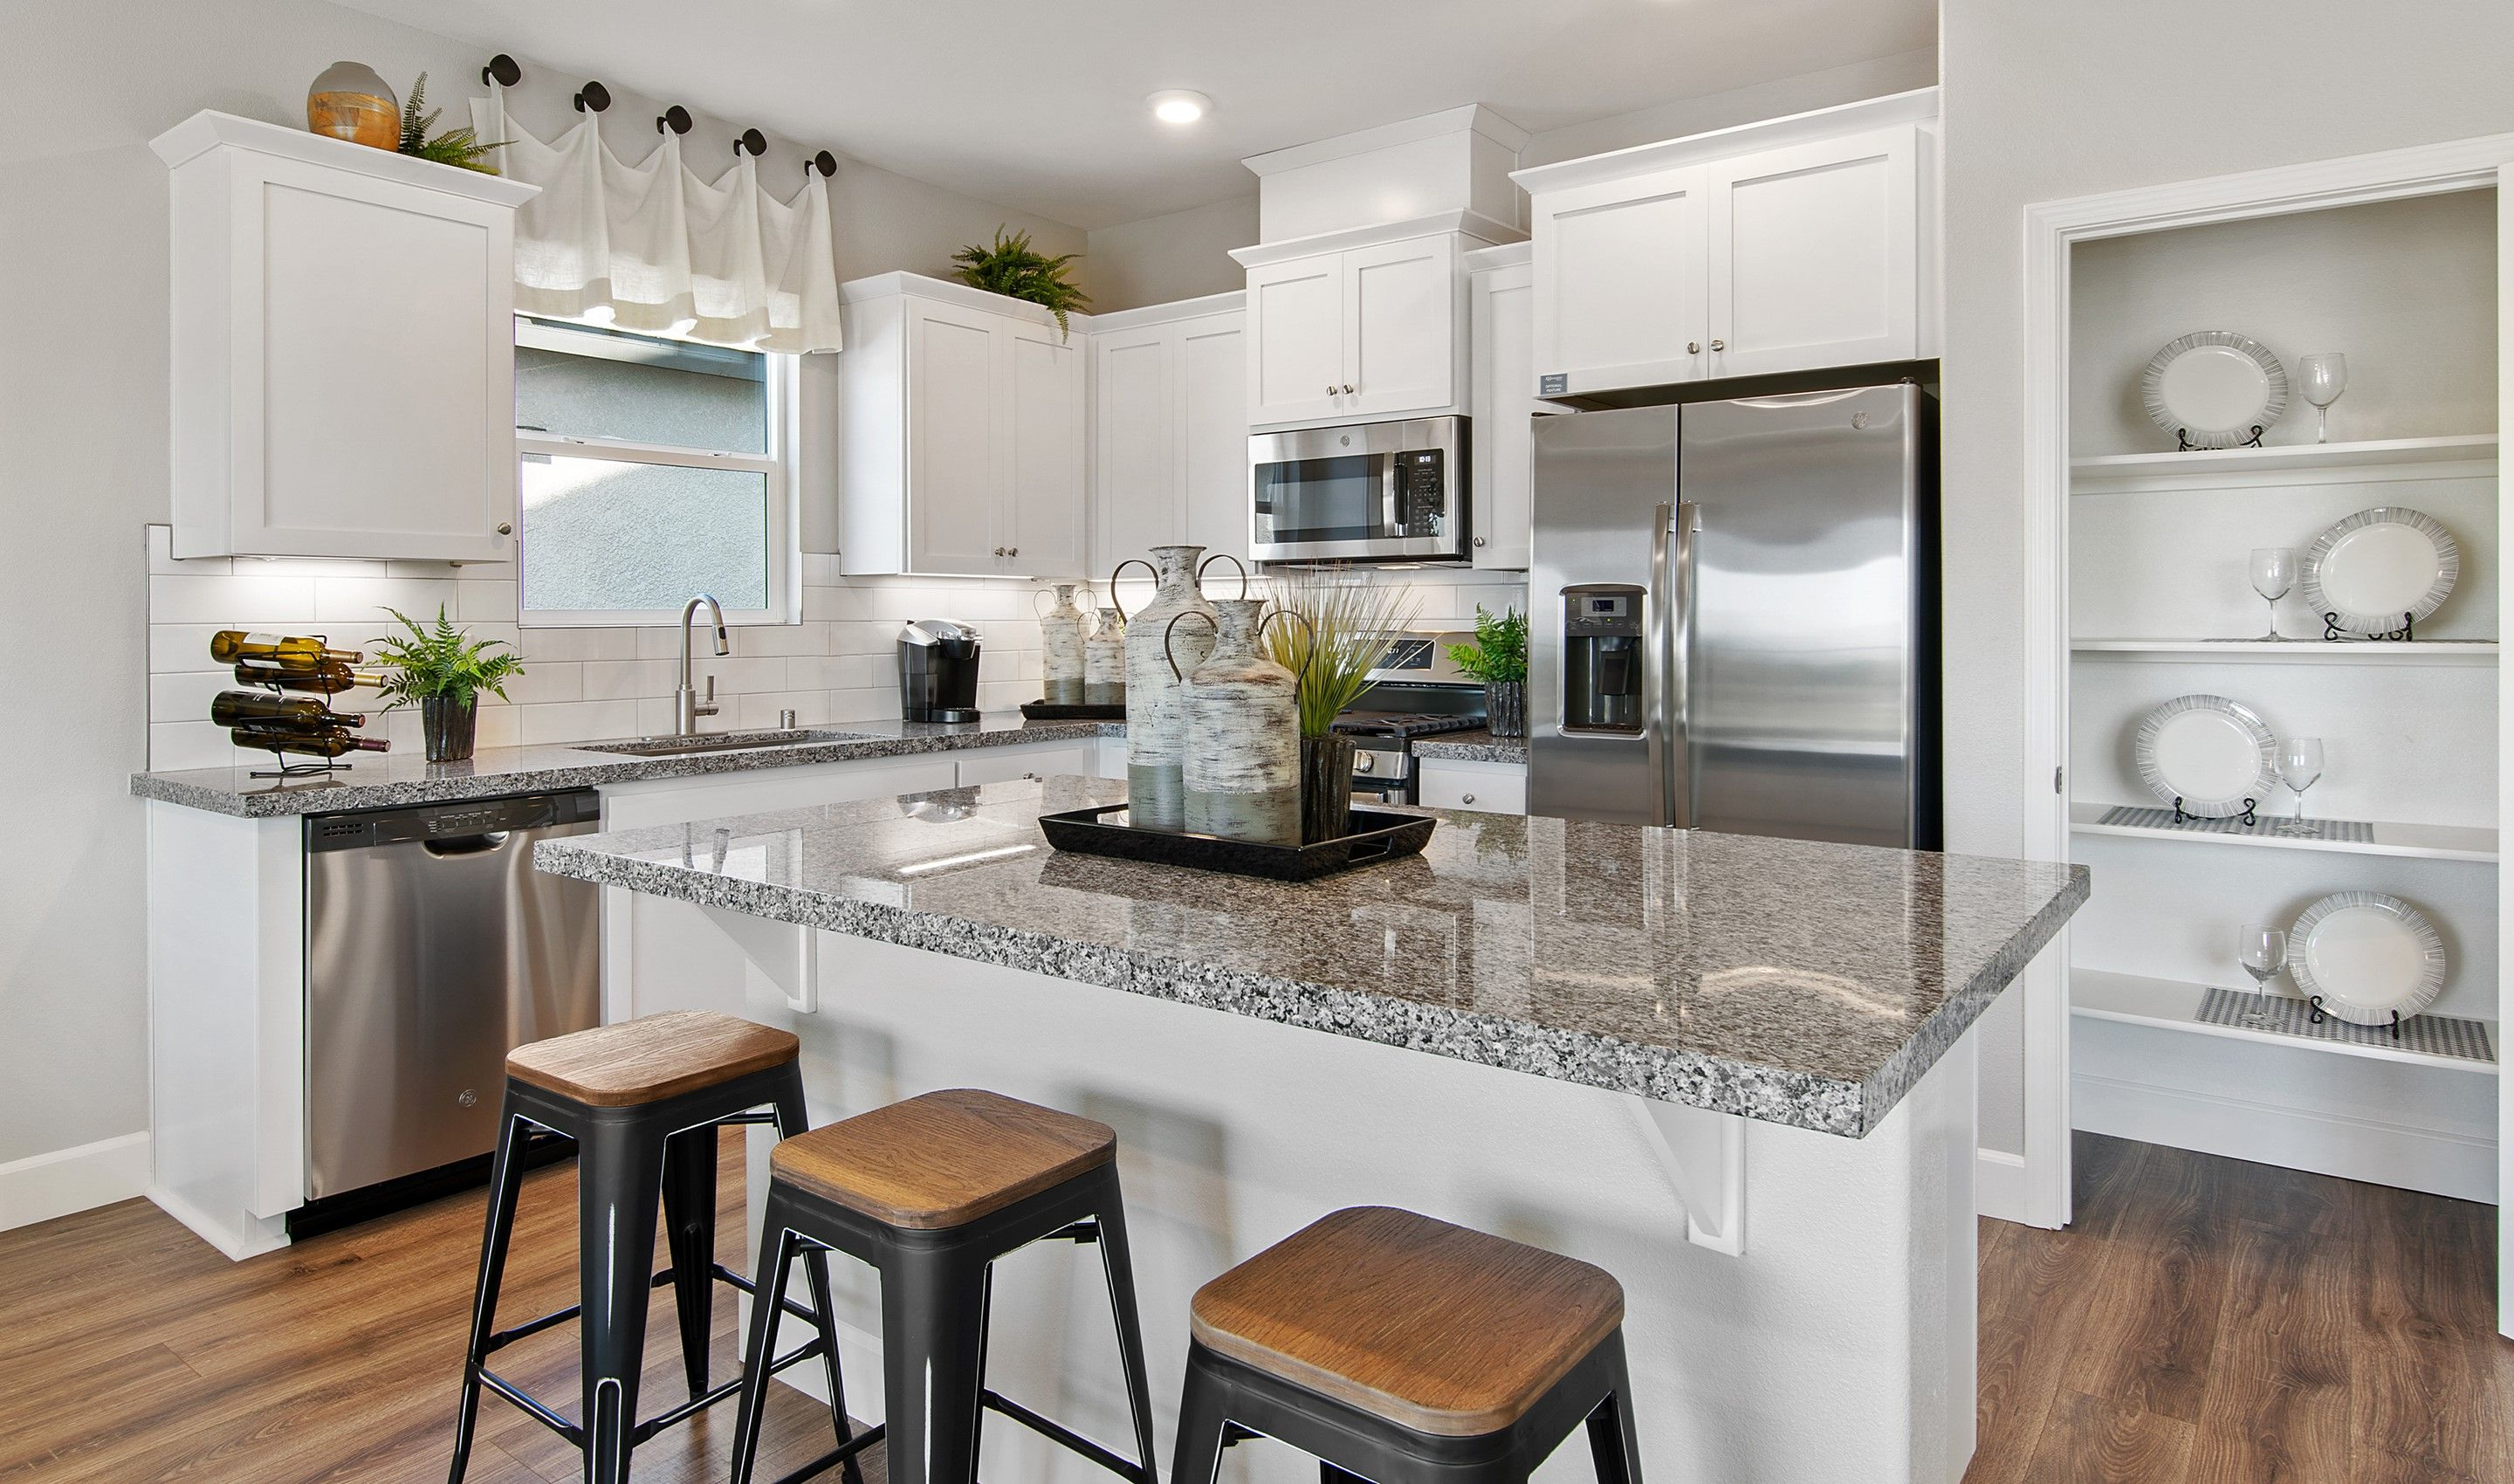 Kitchen featured in the Sunflower By K. Hovnanian® Homes in Modesto, CA